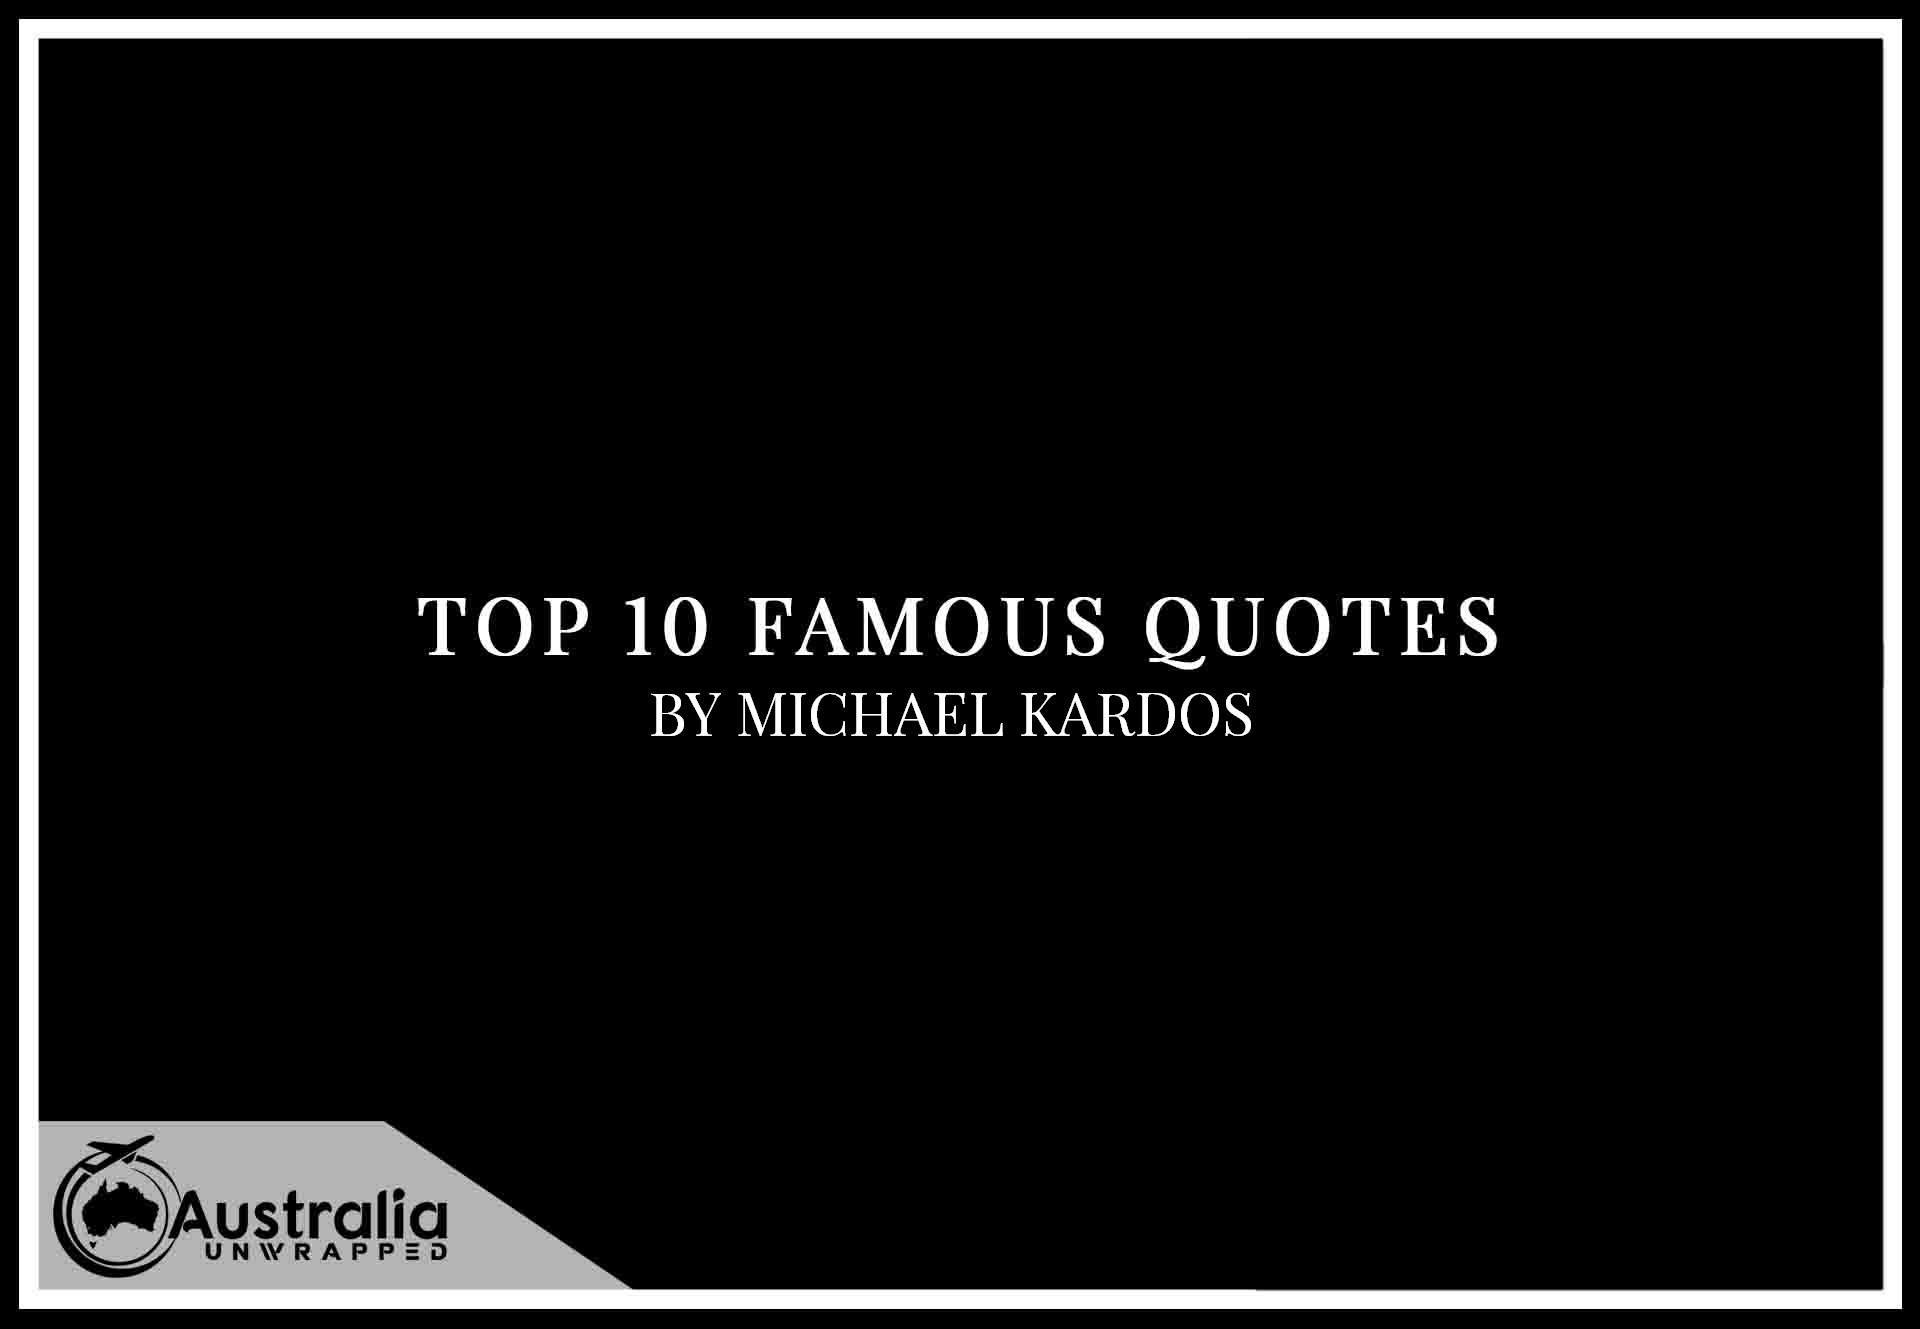 Top 10 Famous Quotes by Author Michael Kardos